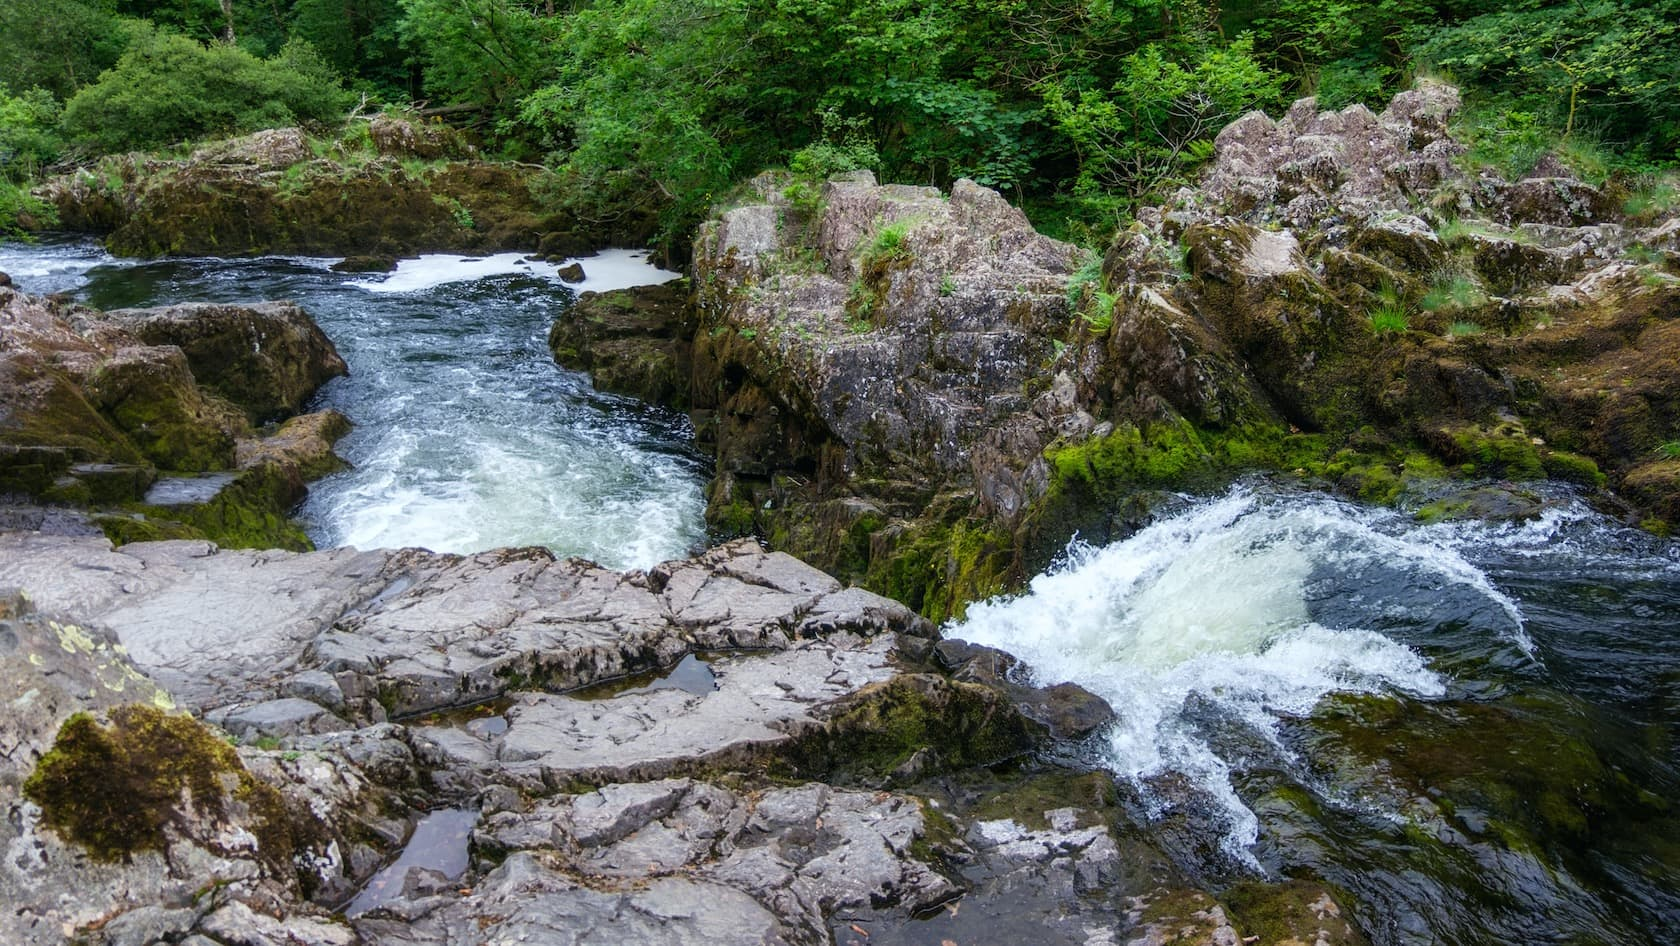 Visiting Skelwith Force waterfall